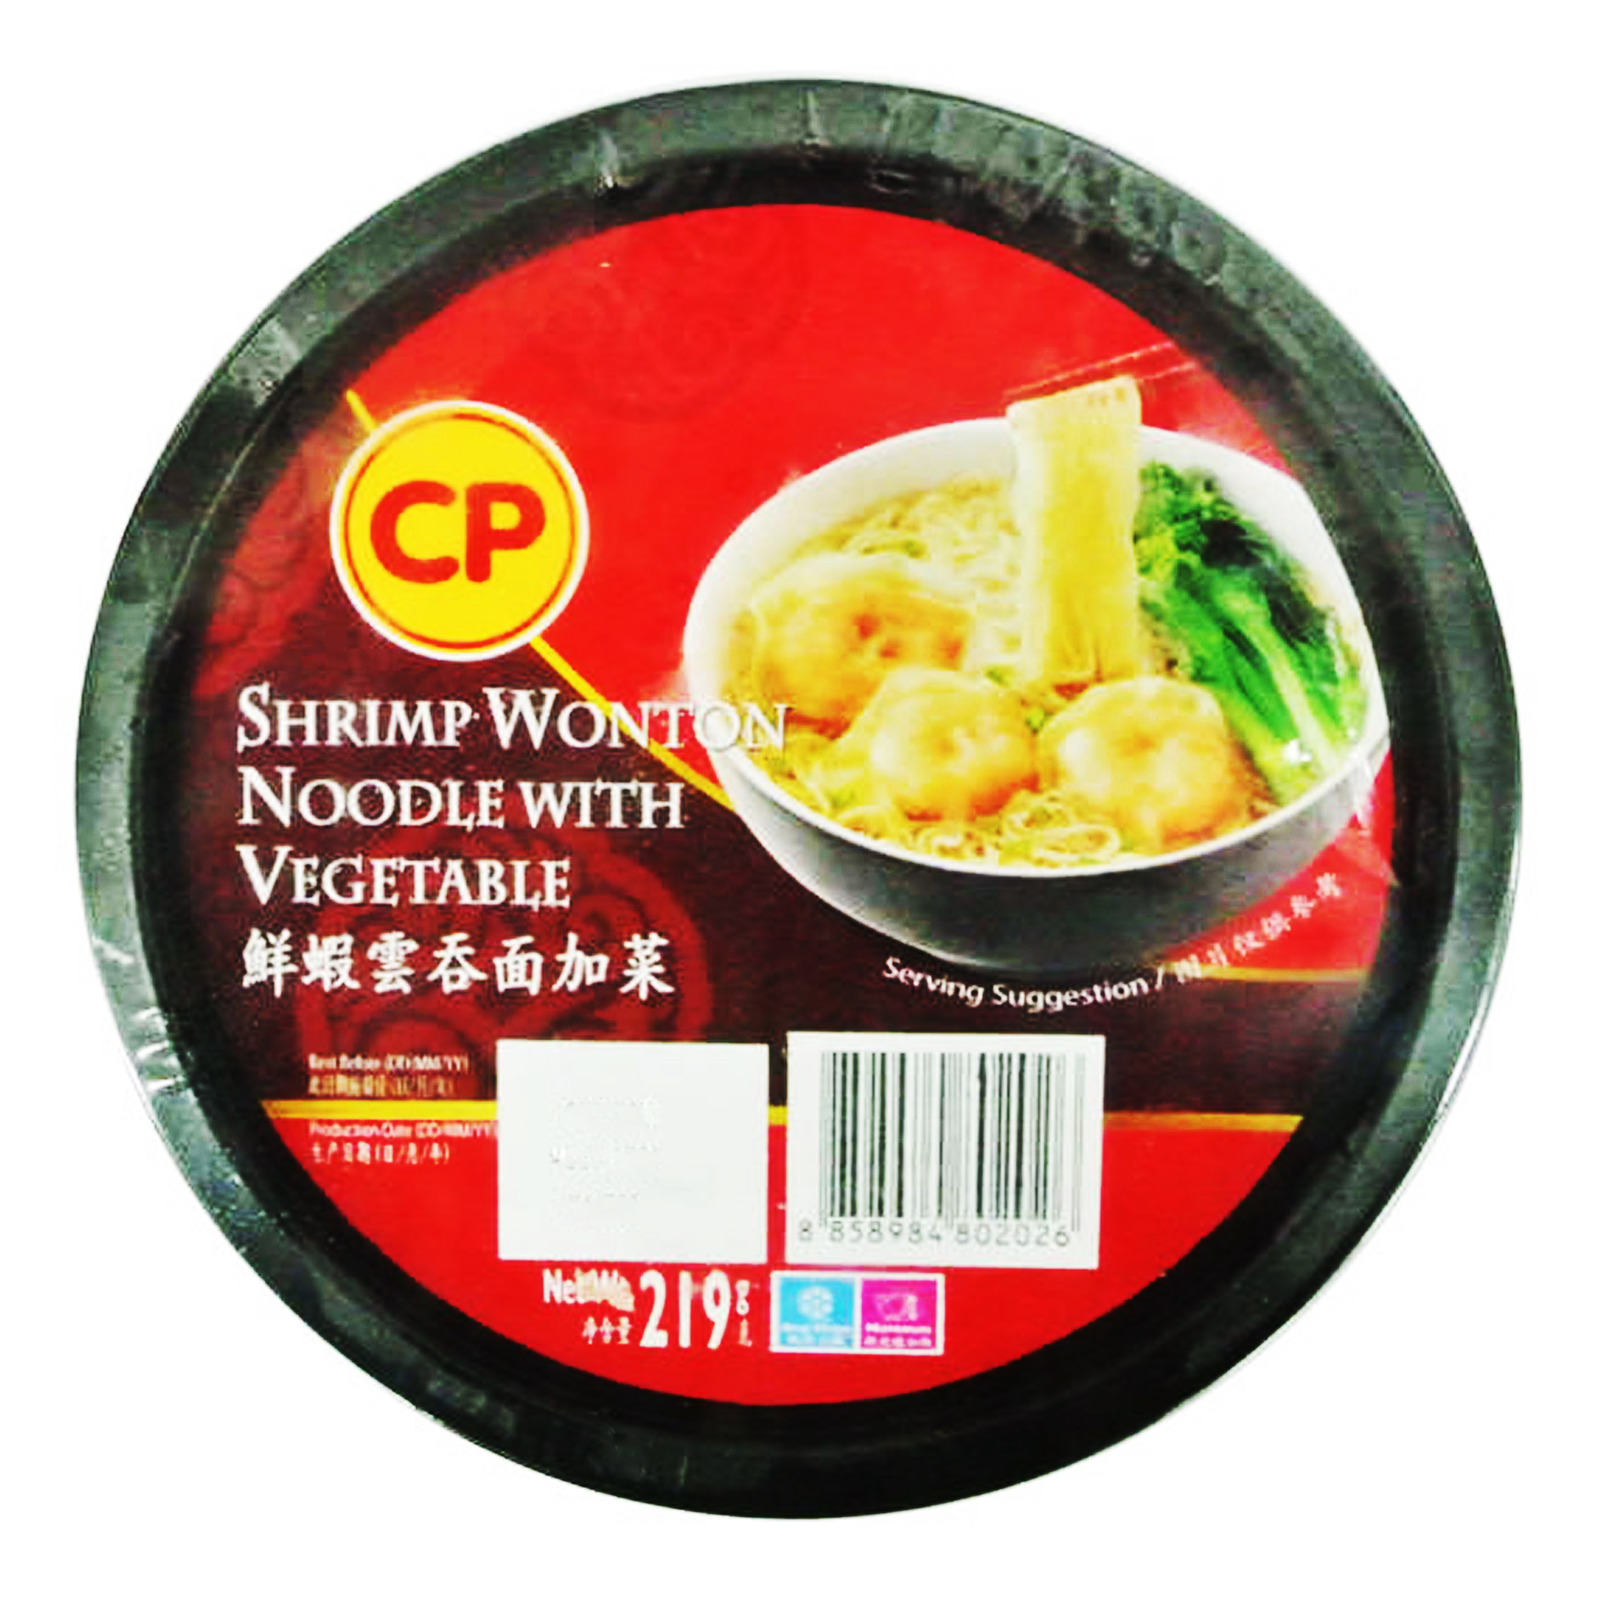 CP Shrimp Wanton with Vegetable Bowl